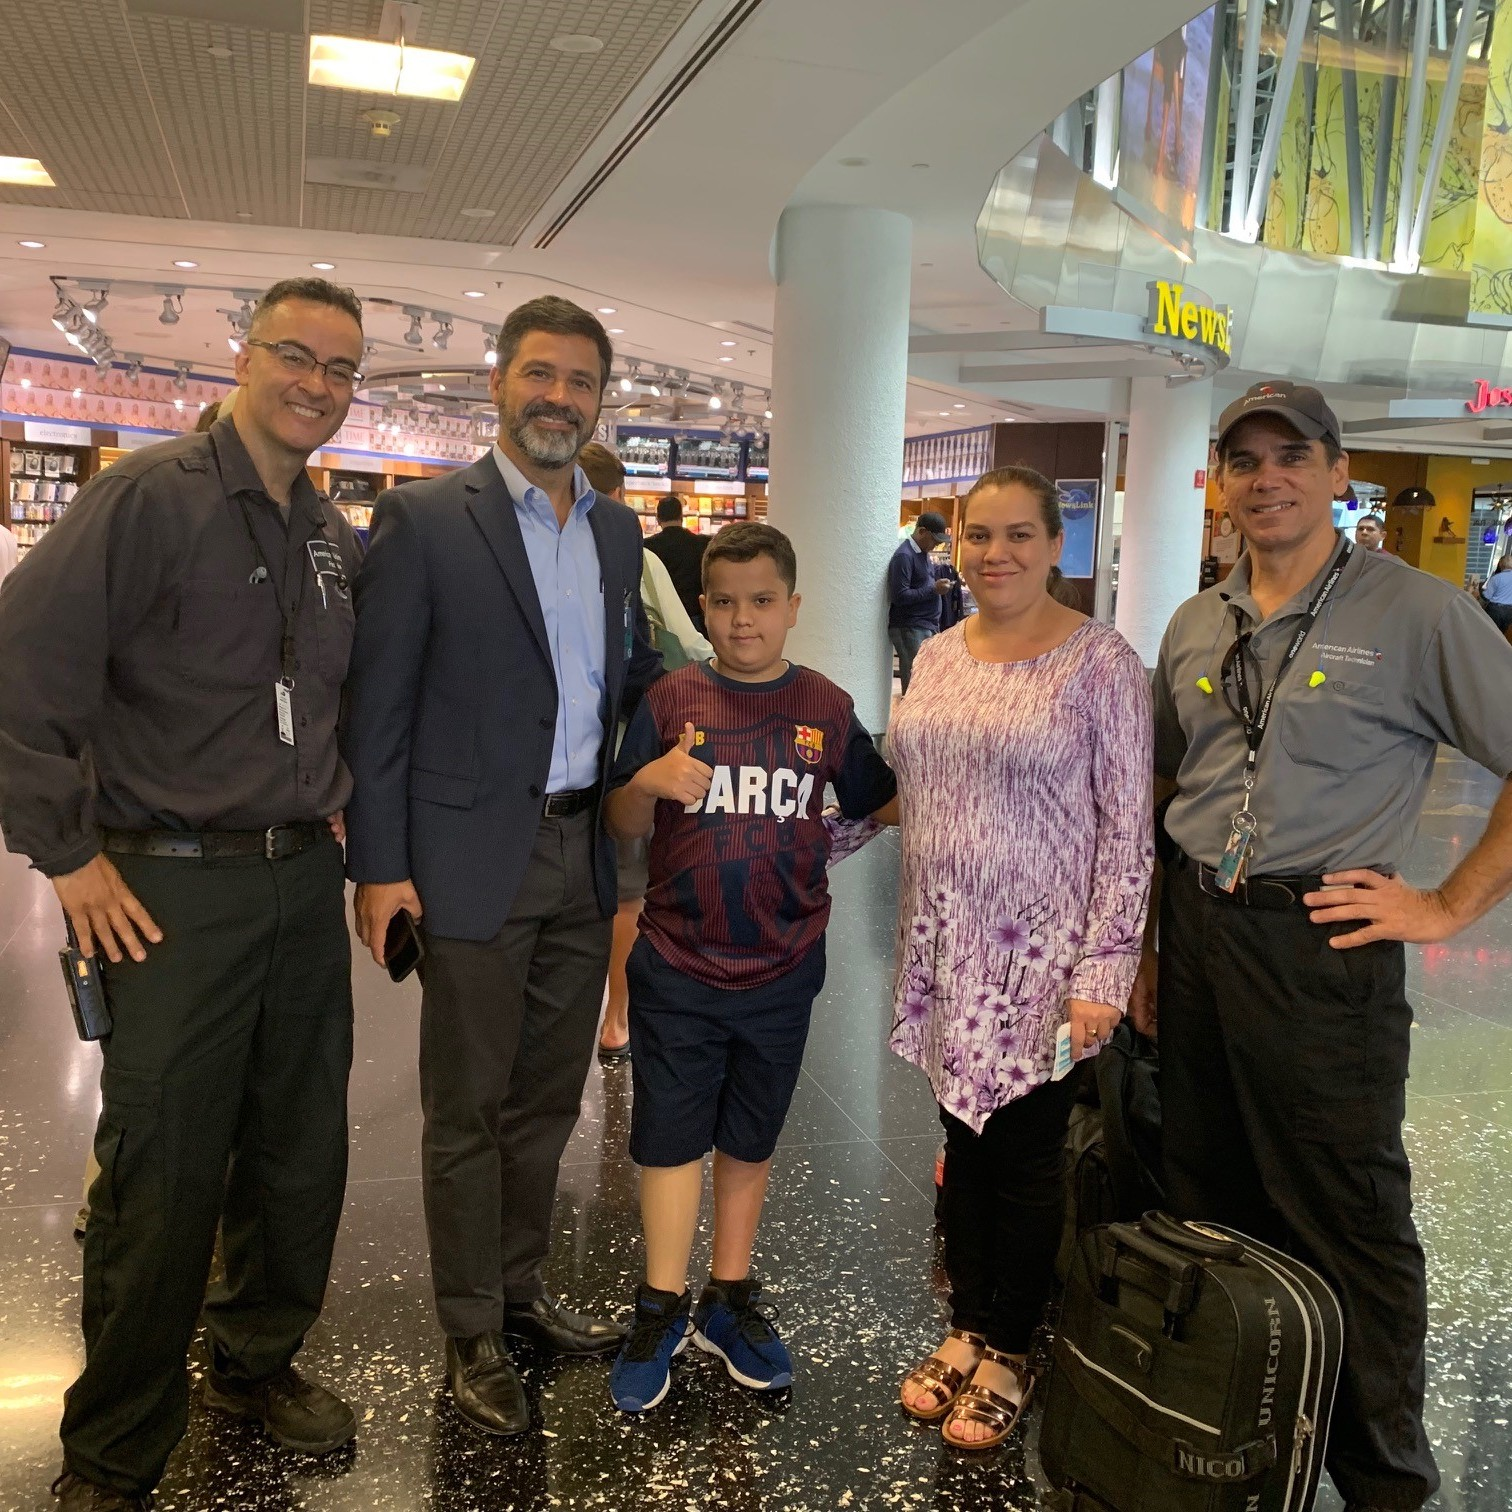 From left, CEBRG Miami President Phil Revollo, Vice President of MIA Hub Operations Juan Carlos Liscano and CEBRG Miami Vice President John Malik (far right) visit with Emanuel and his mother, Idalia, at the airport.